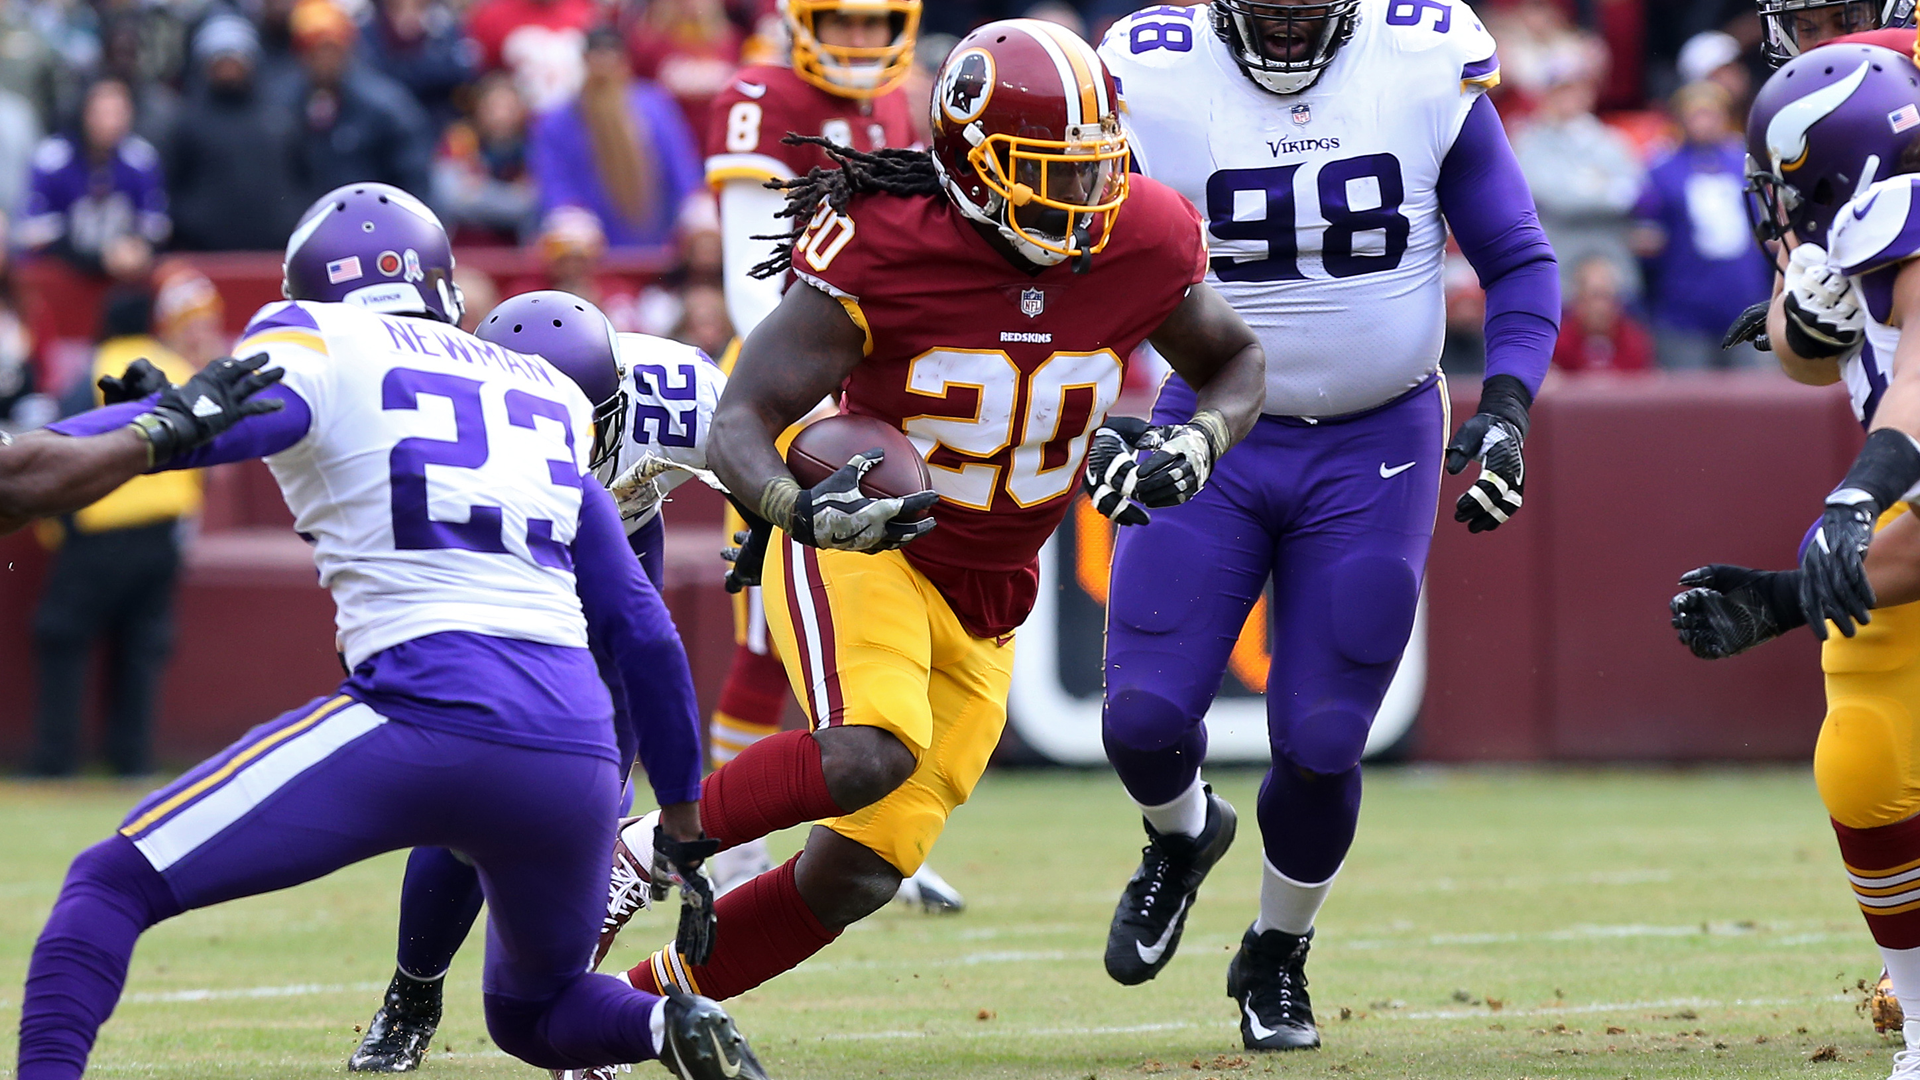 Fantasy football redskins options post derrius guice injury dans talking about fake football ramifications from a aloadofball Image collections